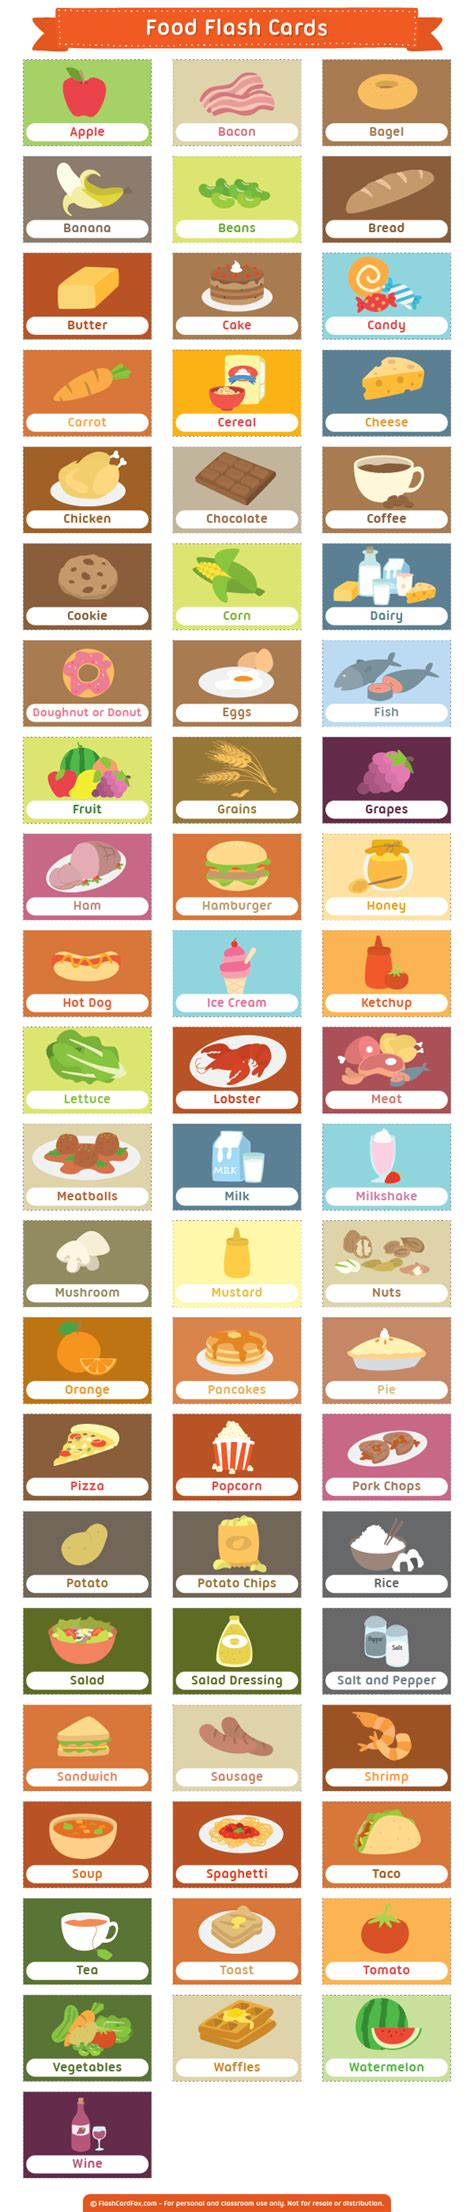 cuisine flash free printable food flash cards them in pdf